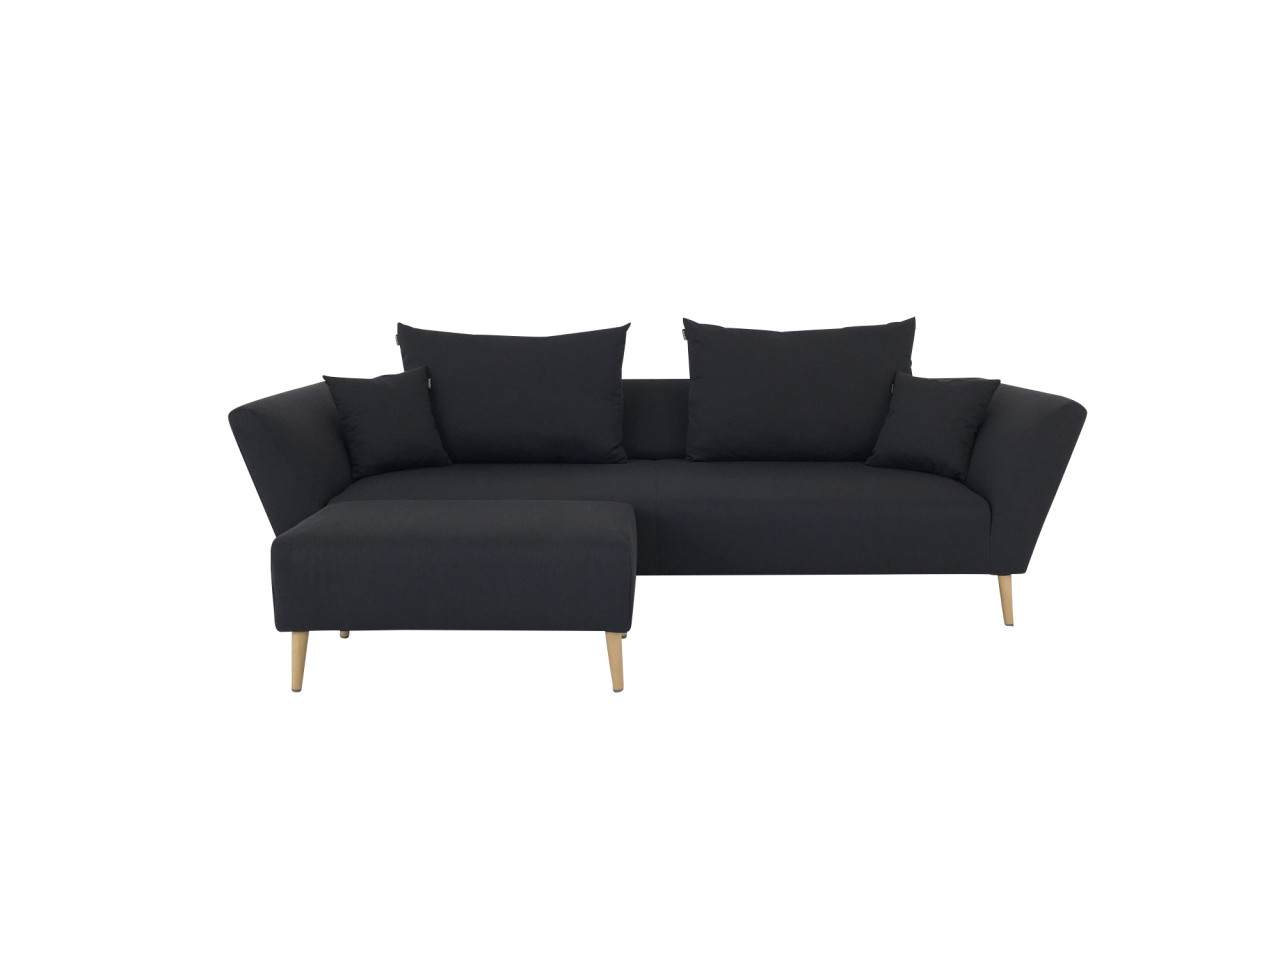 freistil 176 sofa mit polsterbank und kissen in stoff schwarzgrau zum sonderpreis freistil 176. Black Bedroom Furniture Sets. Home Design Ideas